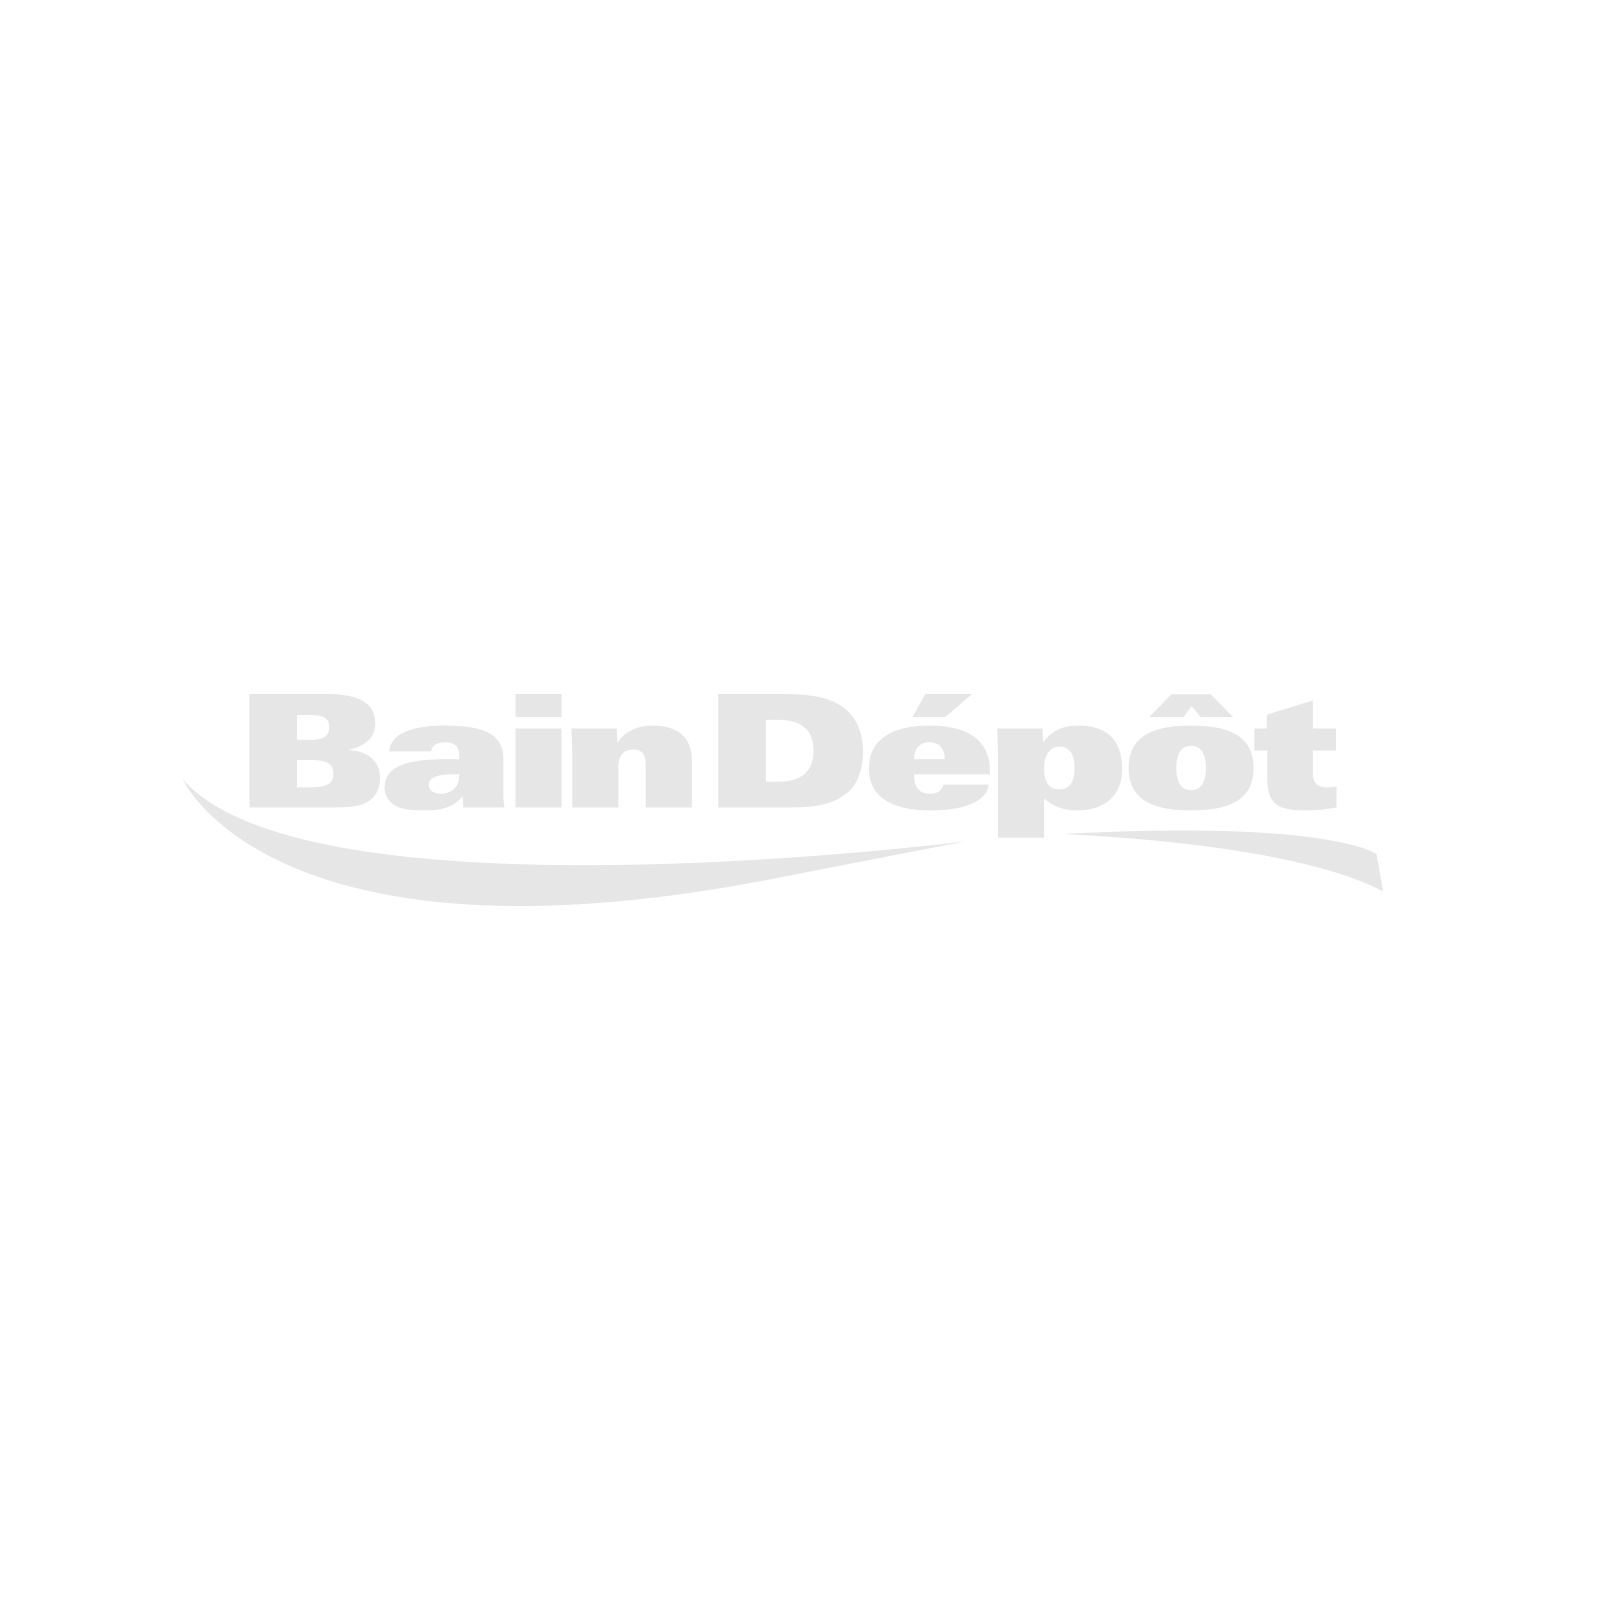 "48"" x 32"" Shower door with opening on 32"" side"